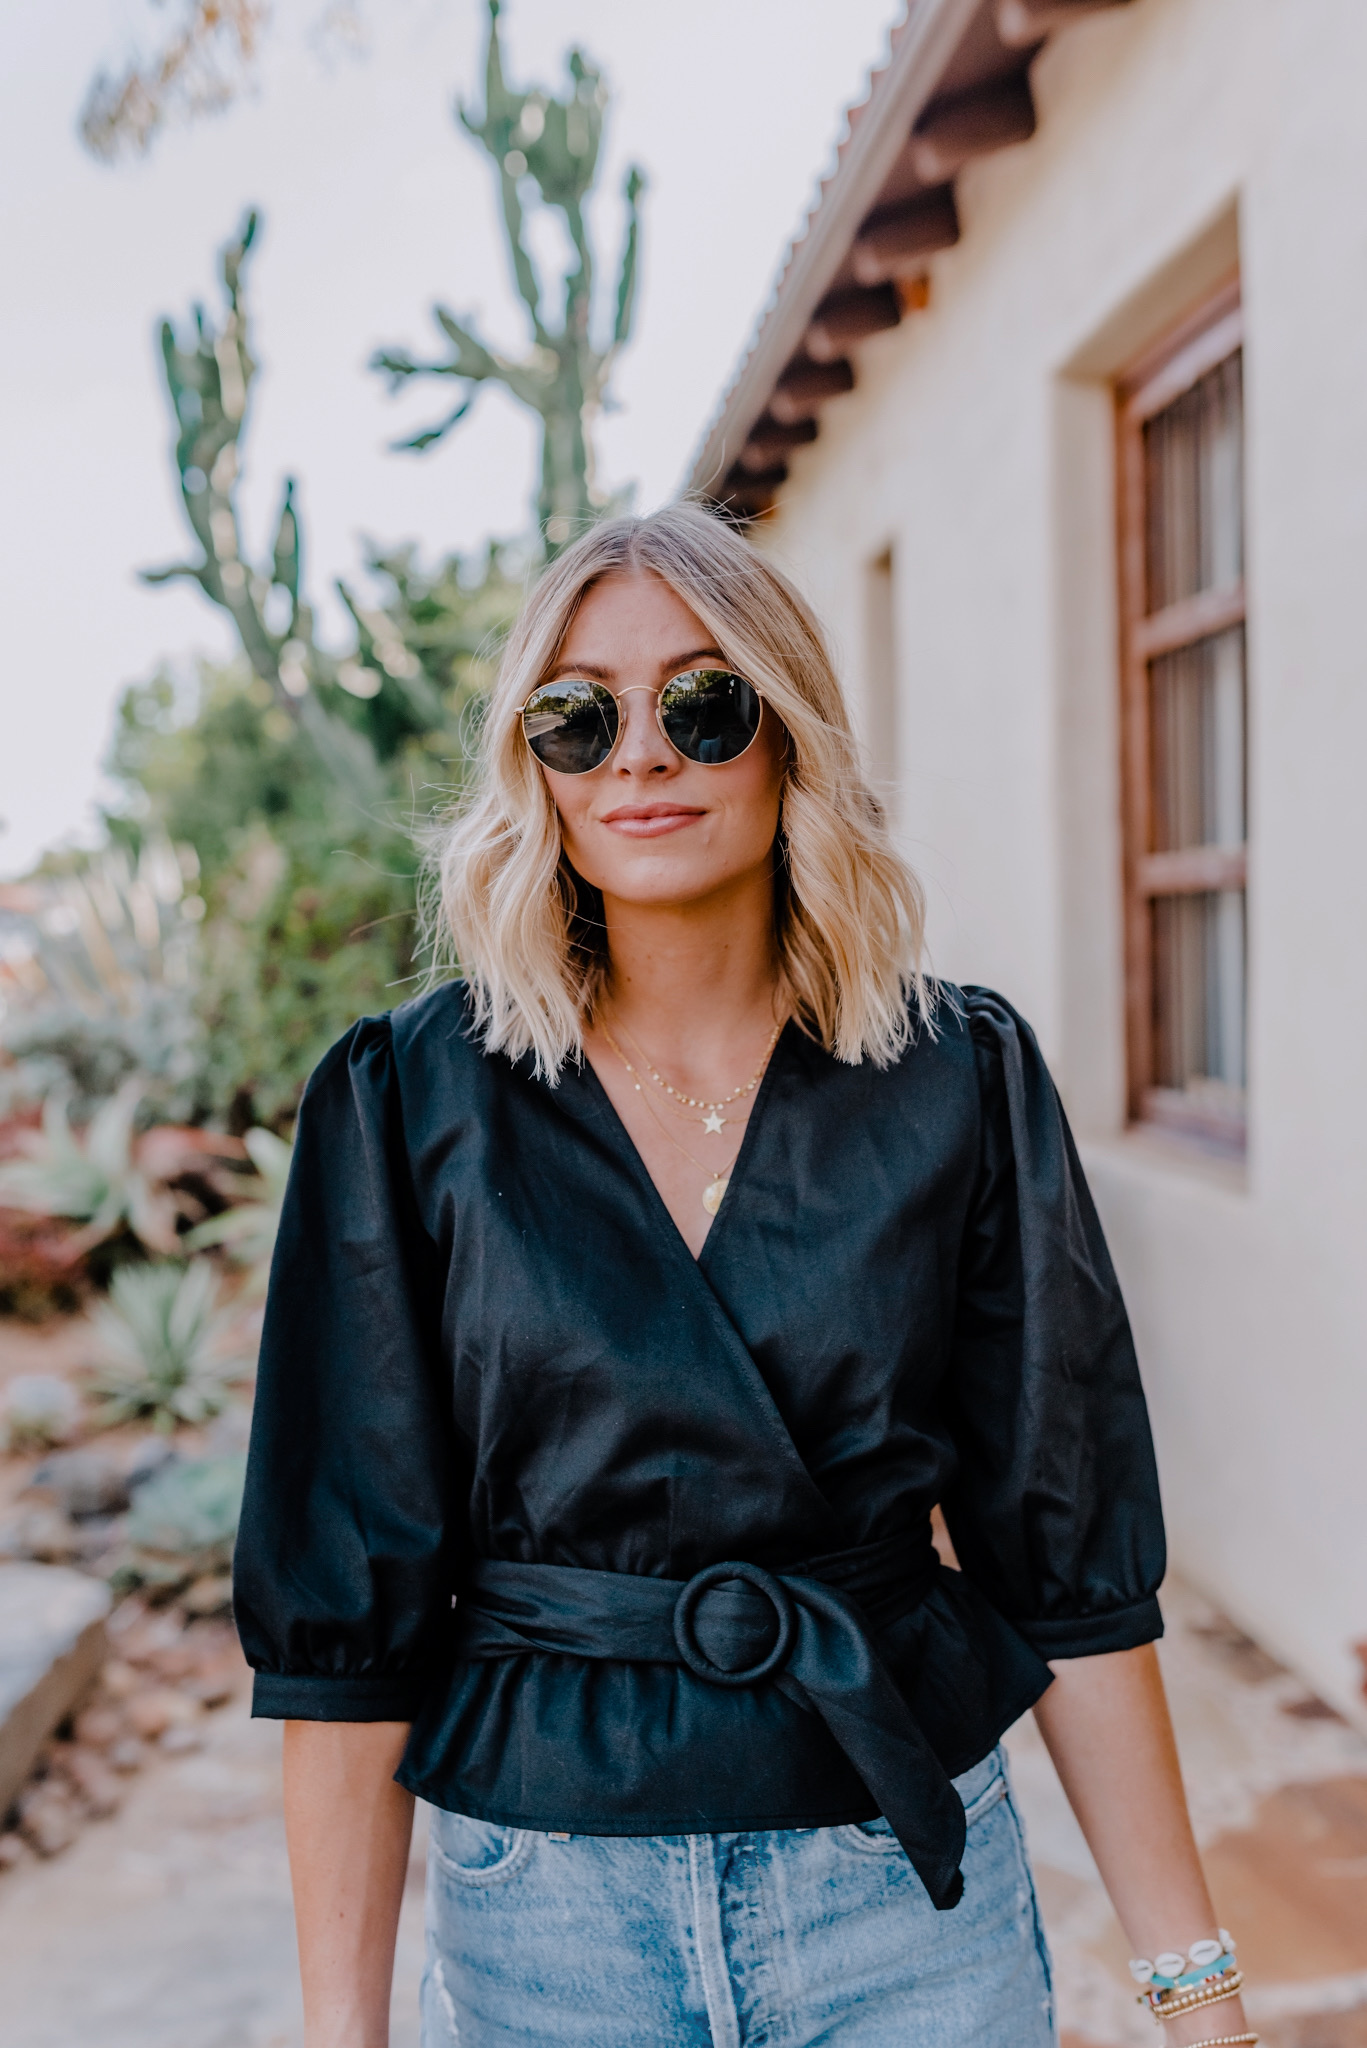 Date Night Outfits by popular San Diego fashion blog, Navy Grace: image of a woman wearing a BB Dakota DYNASTY PUFF SLEEVE TOP, Steve Madden LOFT BLACK SNAKE heel sandal, Revolve Agolde 90s Mid Rise Loose Fit jeans, Gorjana Astrology Coin Necklace, and Ray Ban ROUND DOUBLE BRIDGE @COLLECTION sunglasses.